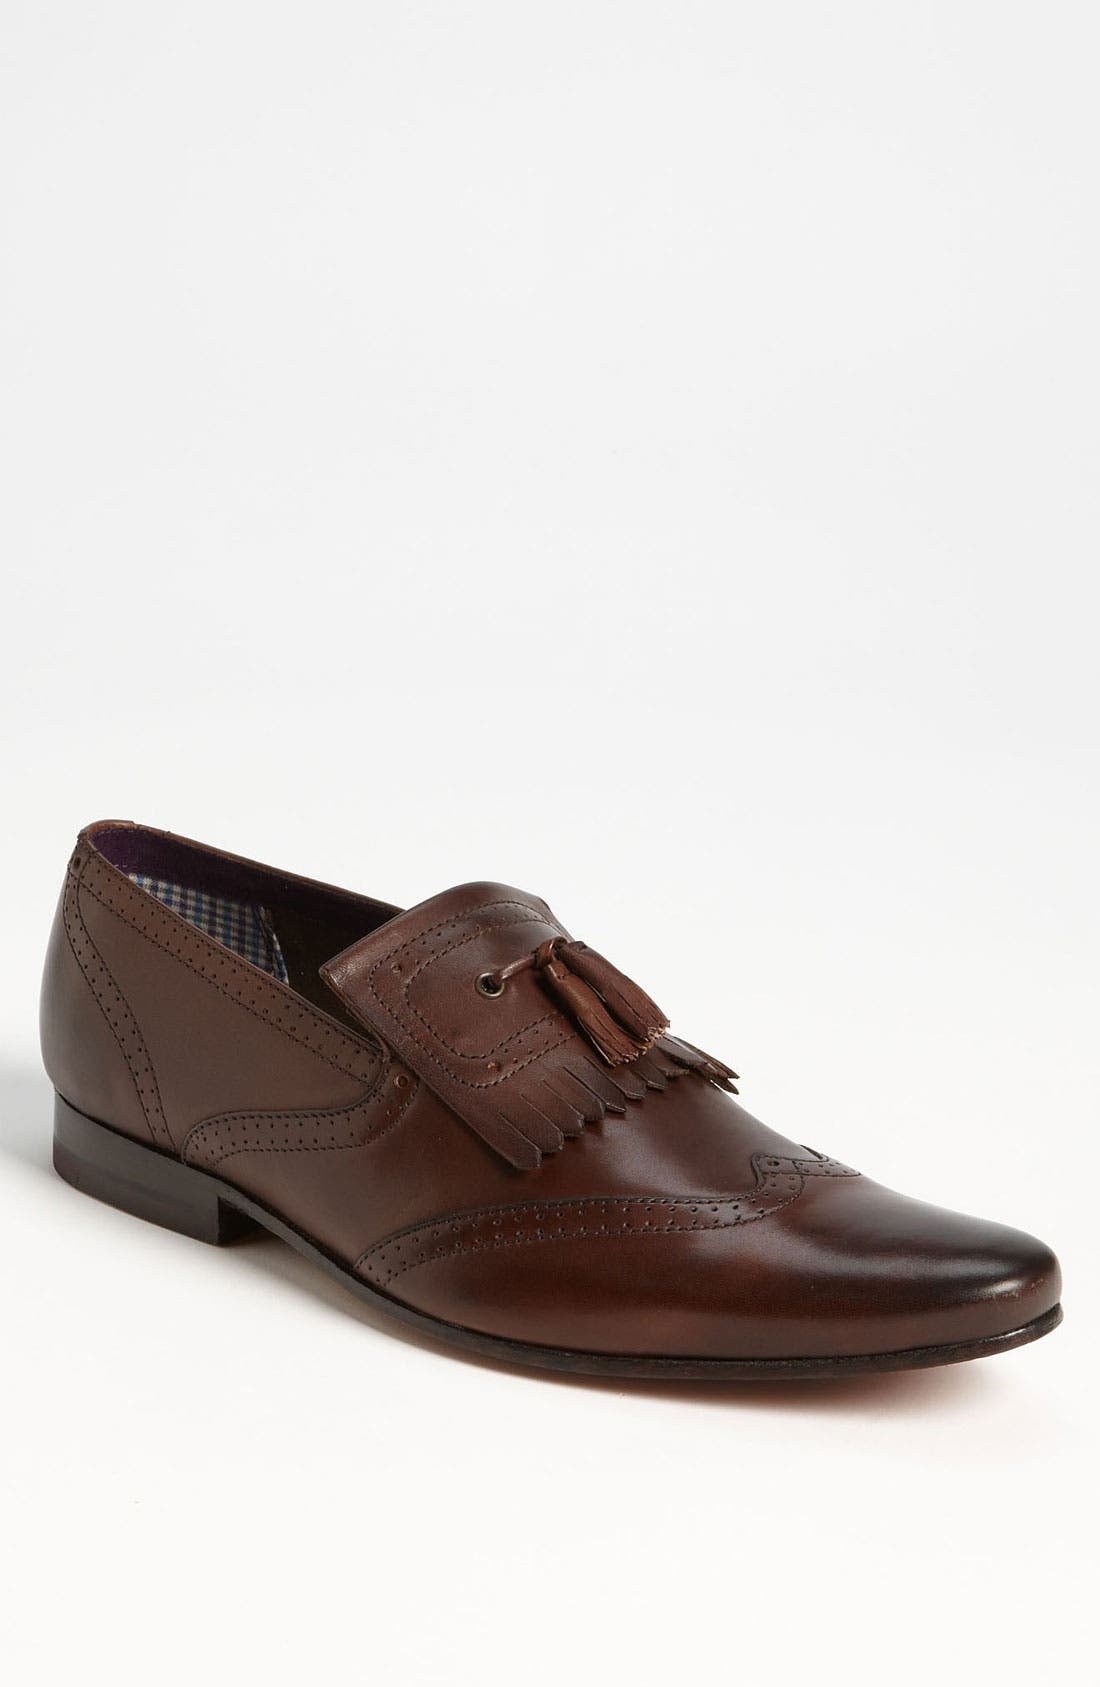 Alternate Image 1 Selected - Ted Baker London 'Alarias' Kiltie Loafer